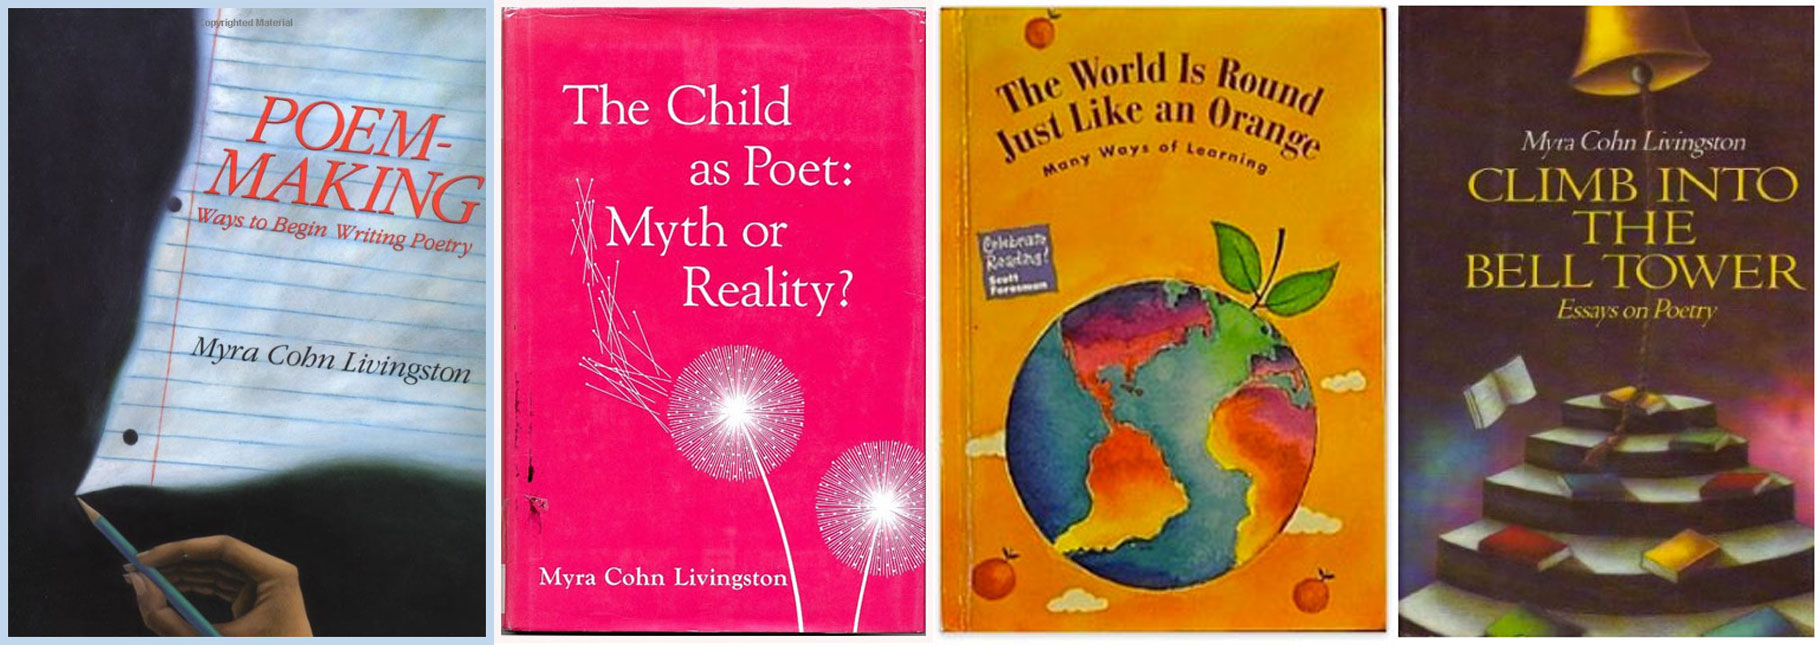 book-covers4